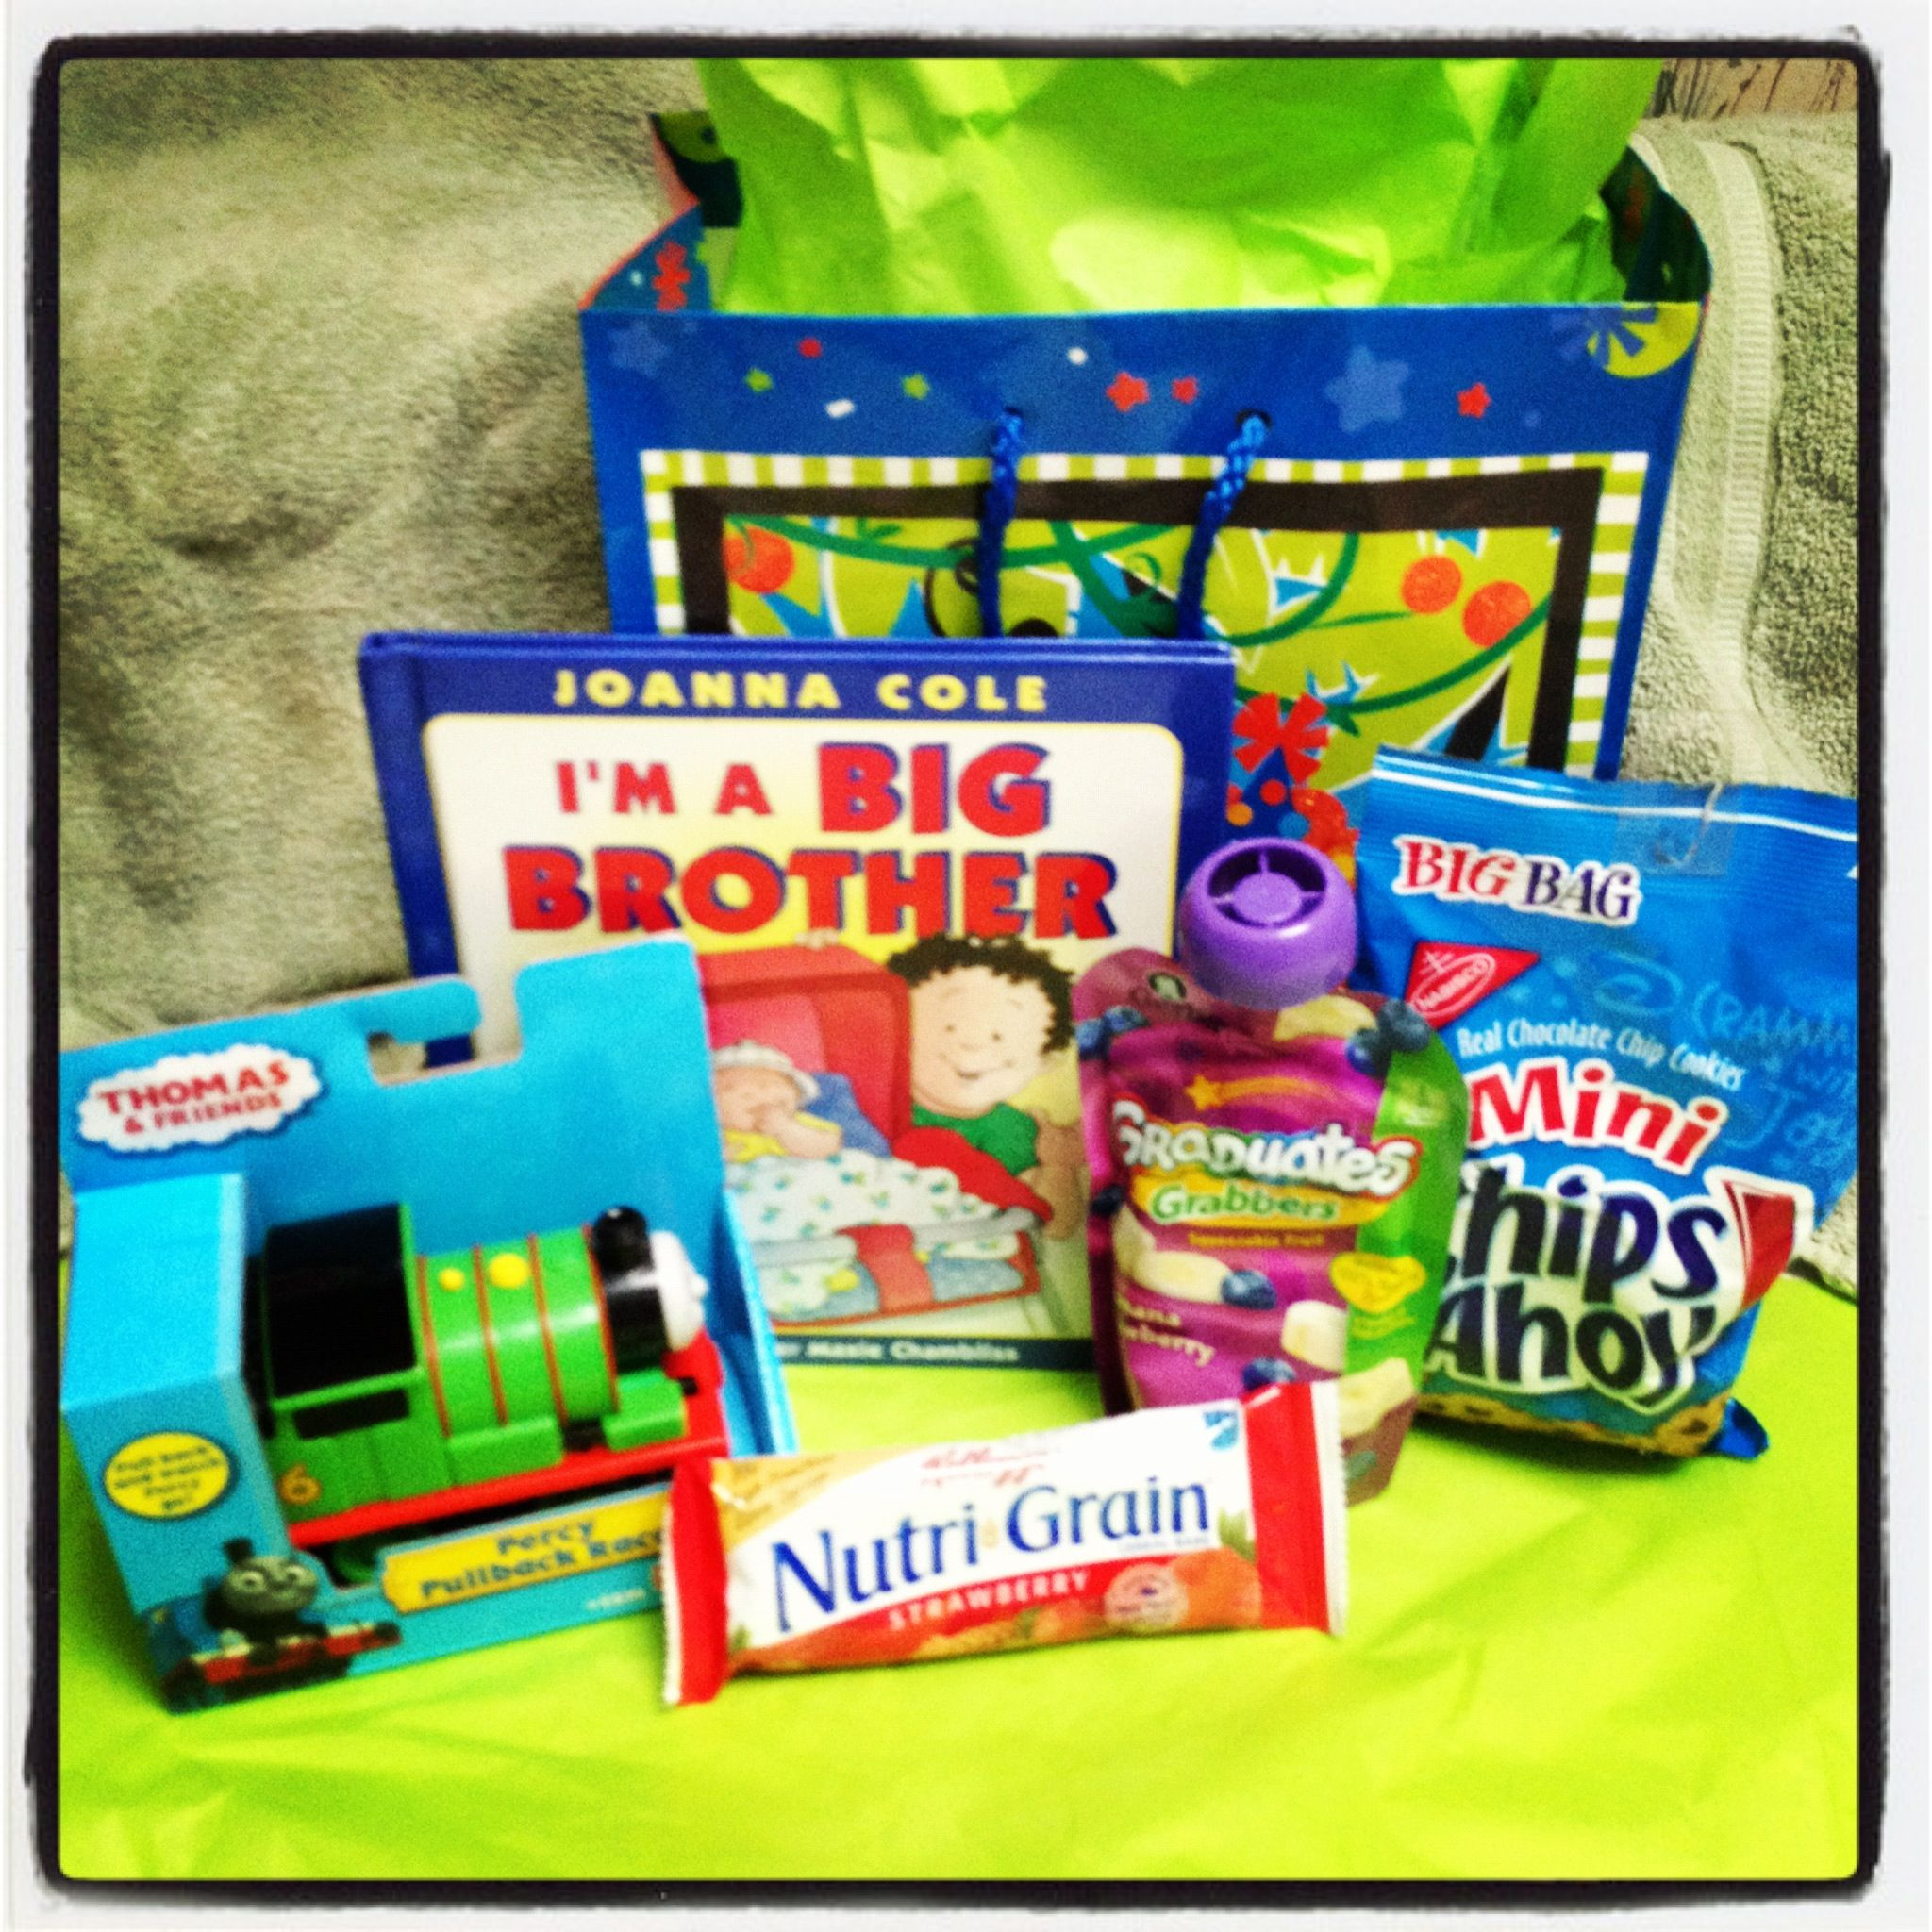 Big brother gift from baby:   -big brother book -Thomas train  -some of his favorite treats   Pick out a few of older child's favorite things and give as a gift from baby in the hospital. :)